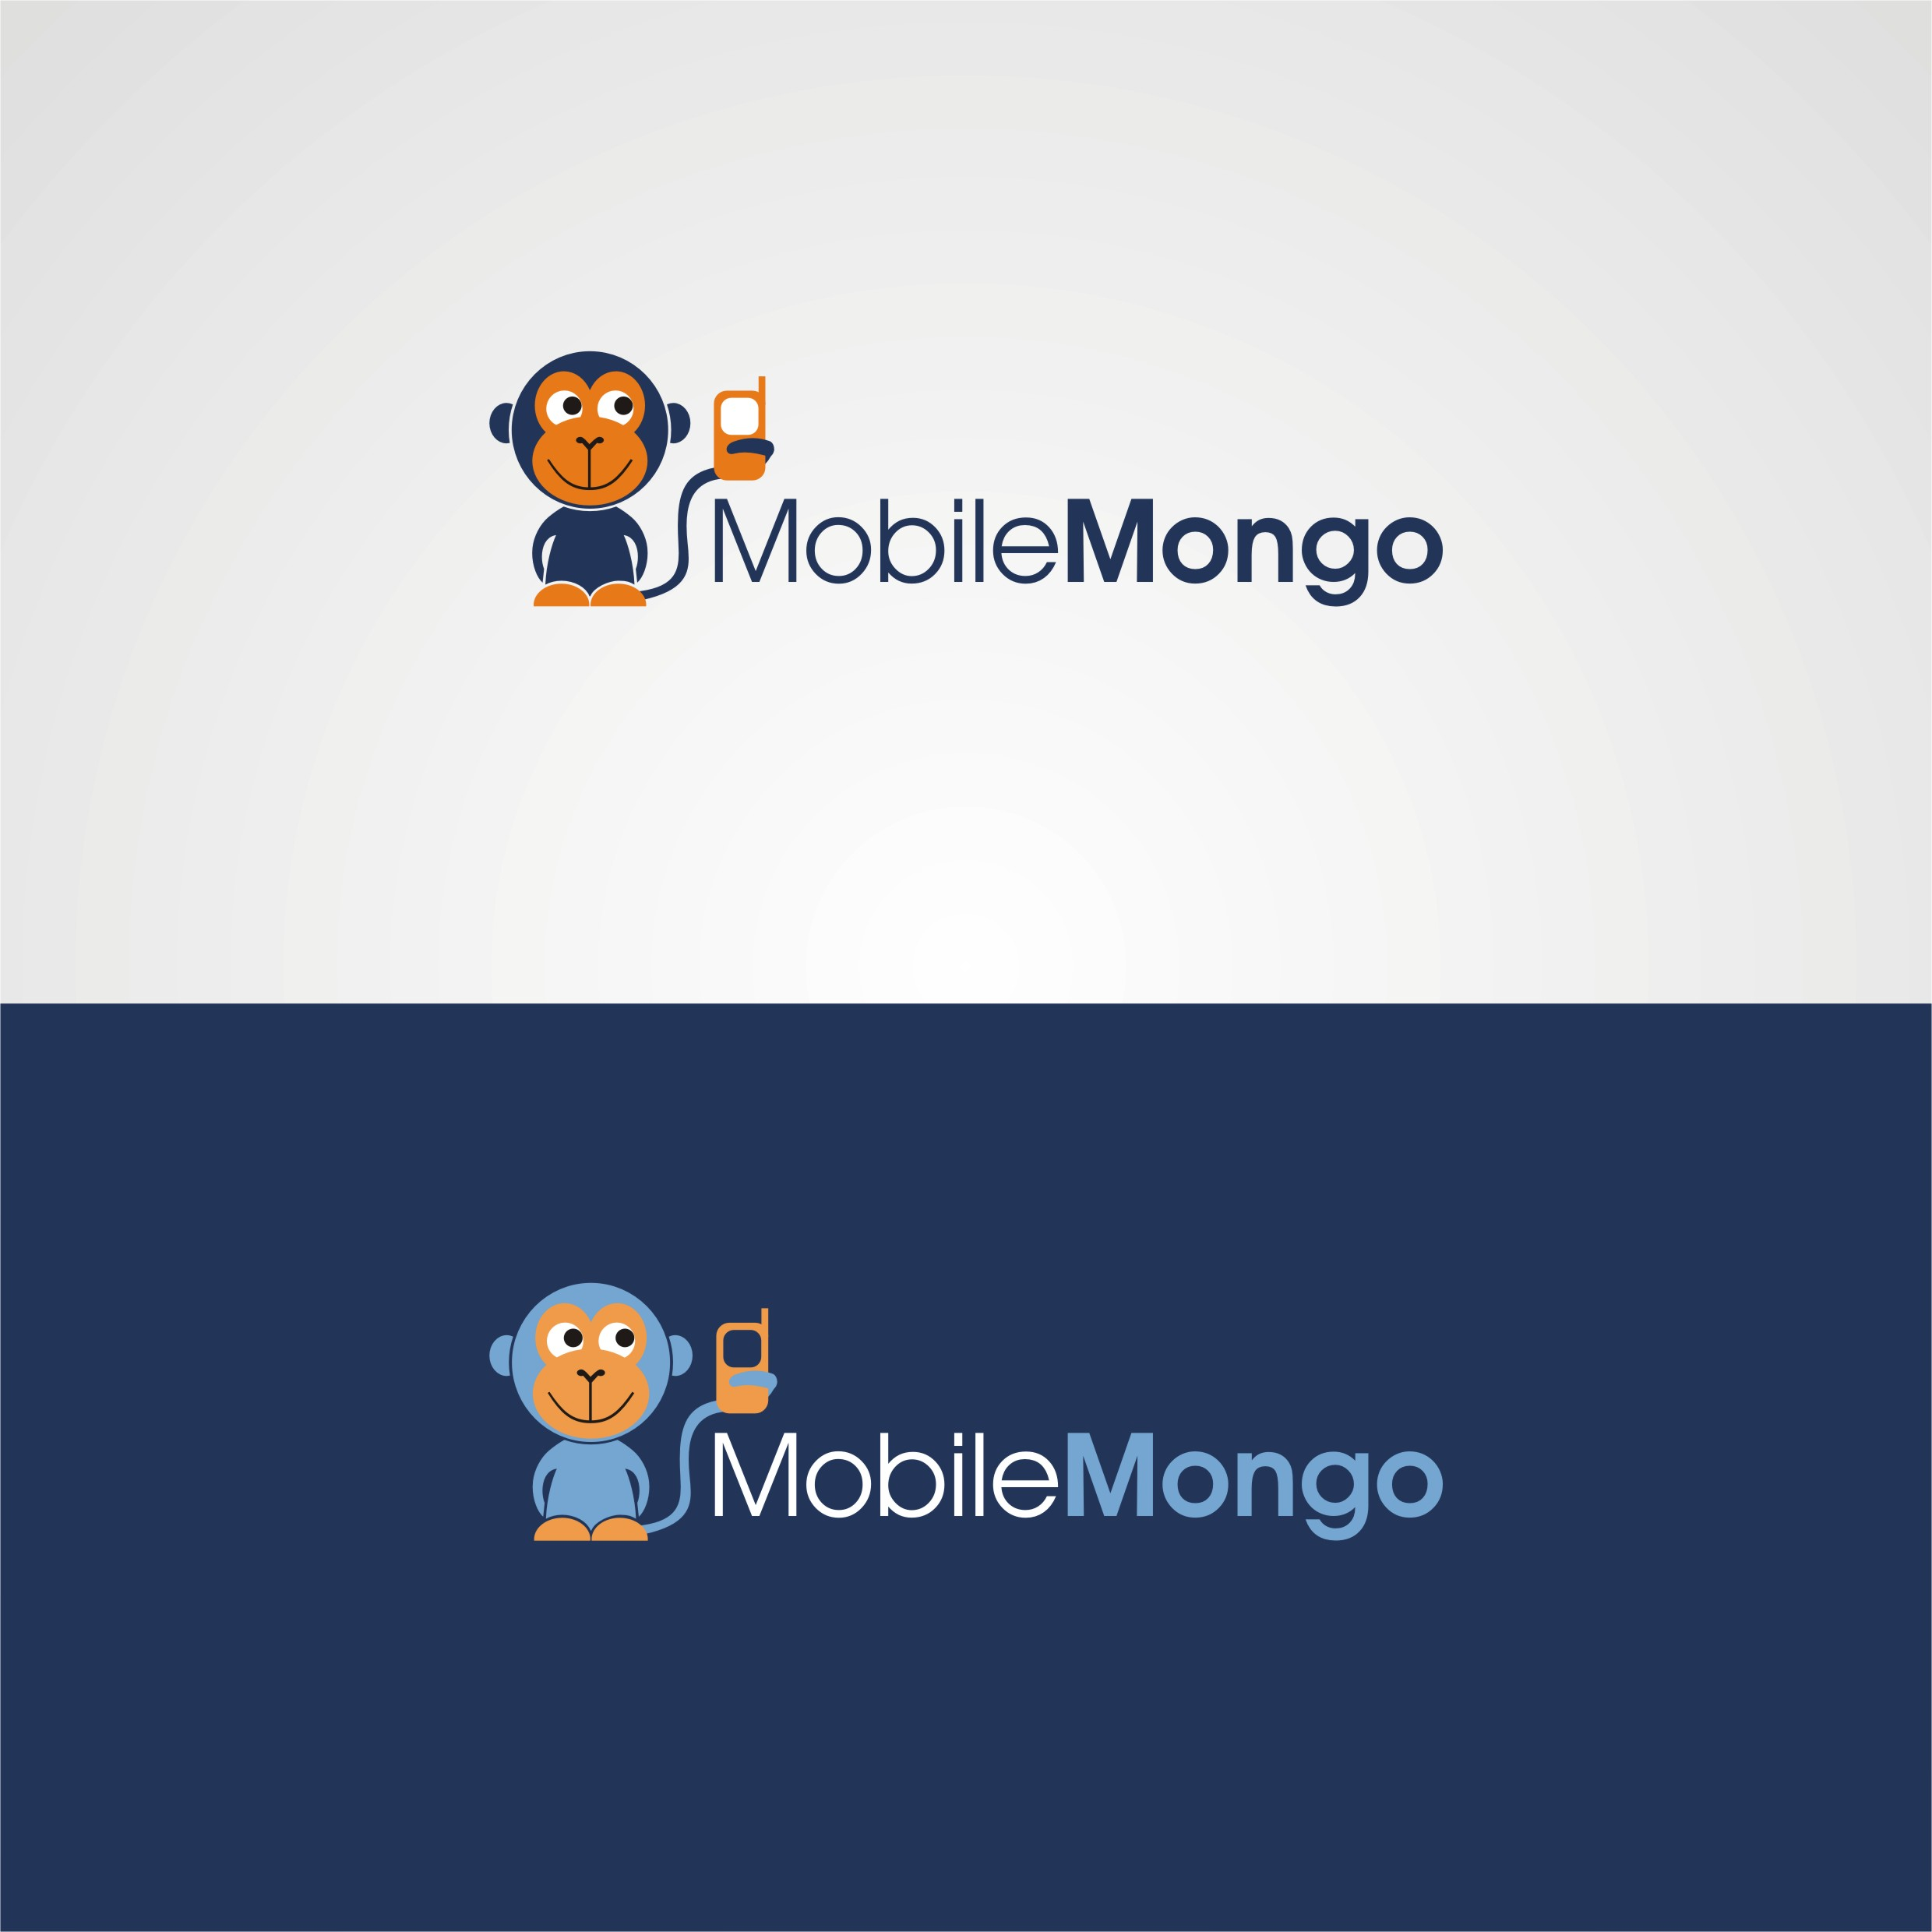 Mobile Mongo Logo Design a Logo & Identity project by MobileMongo